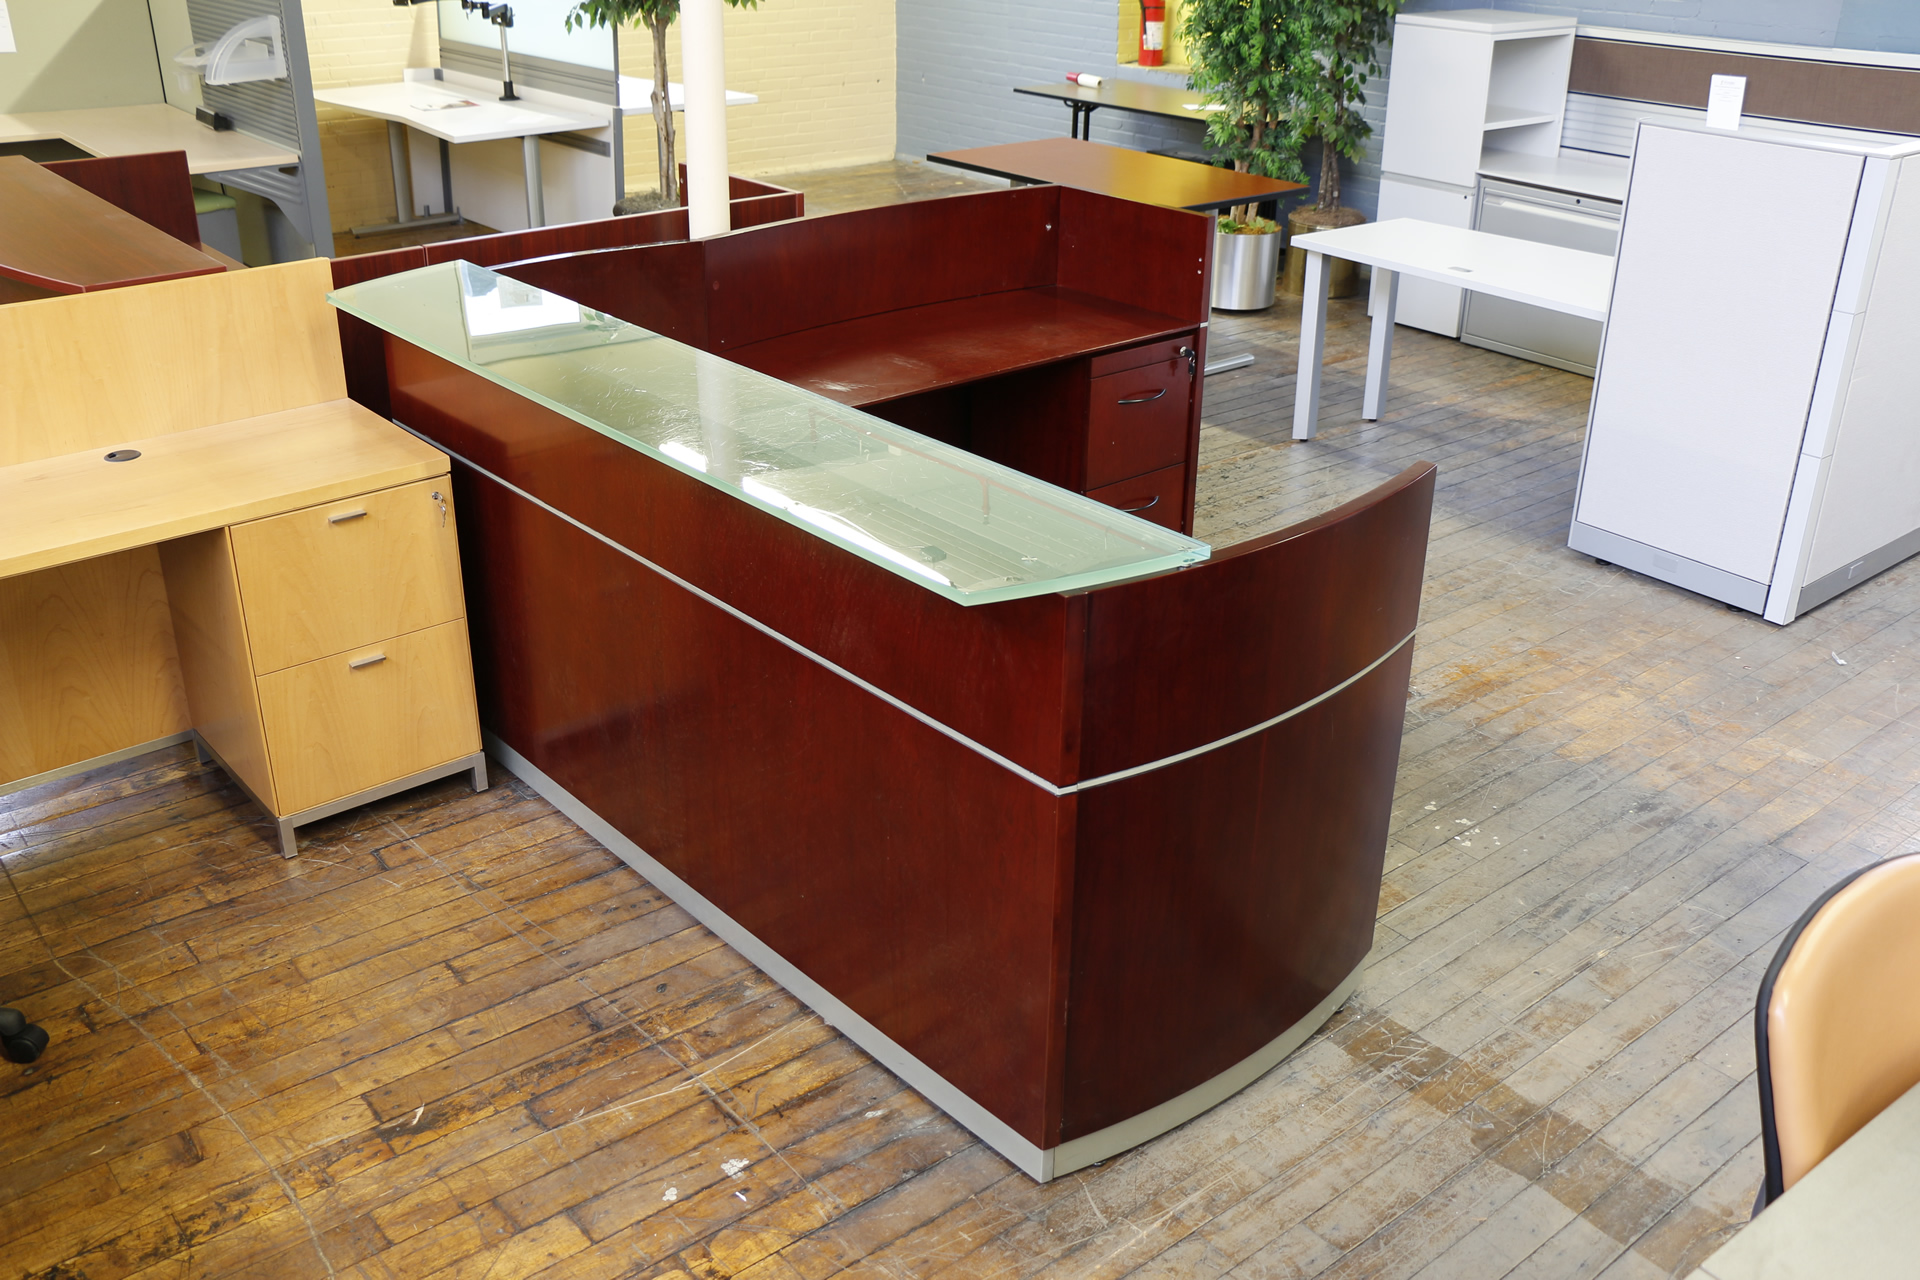 peartreeofficefurniture_peartreeofficefurniture_mg_4998.jpg